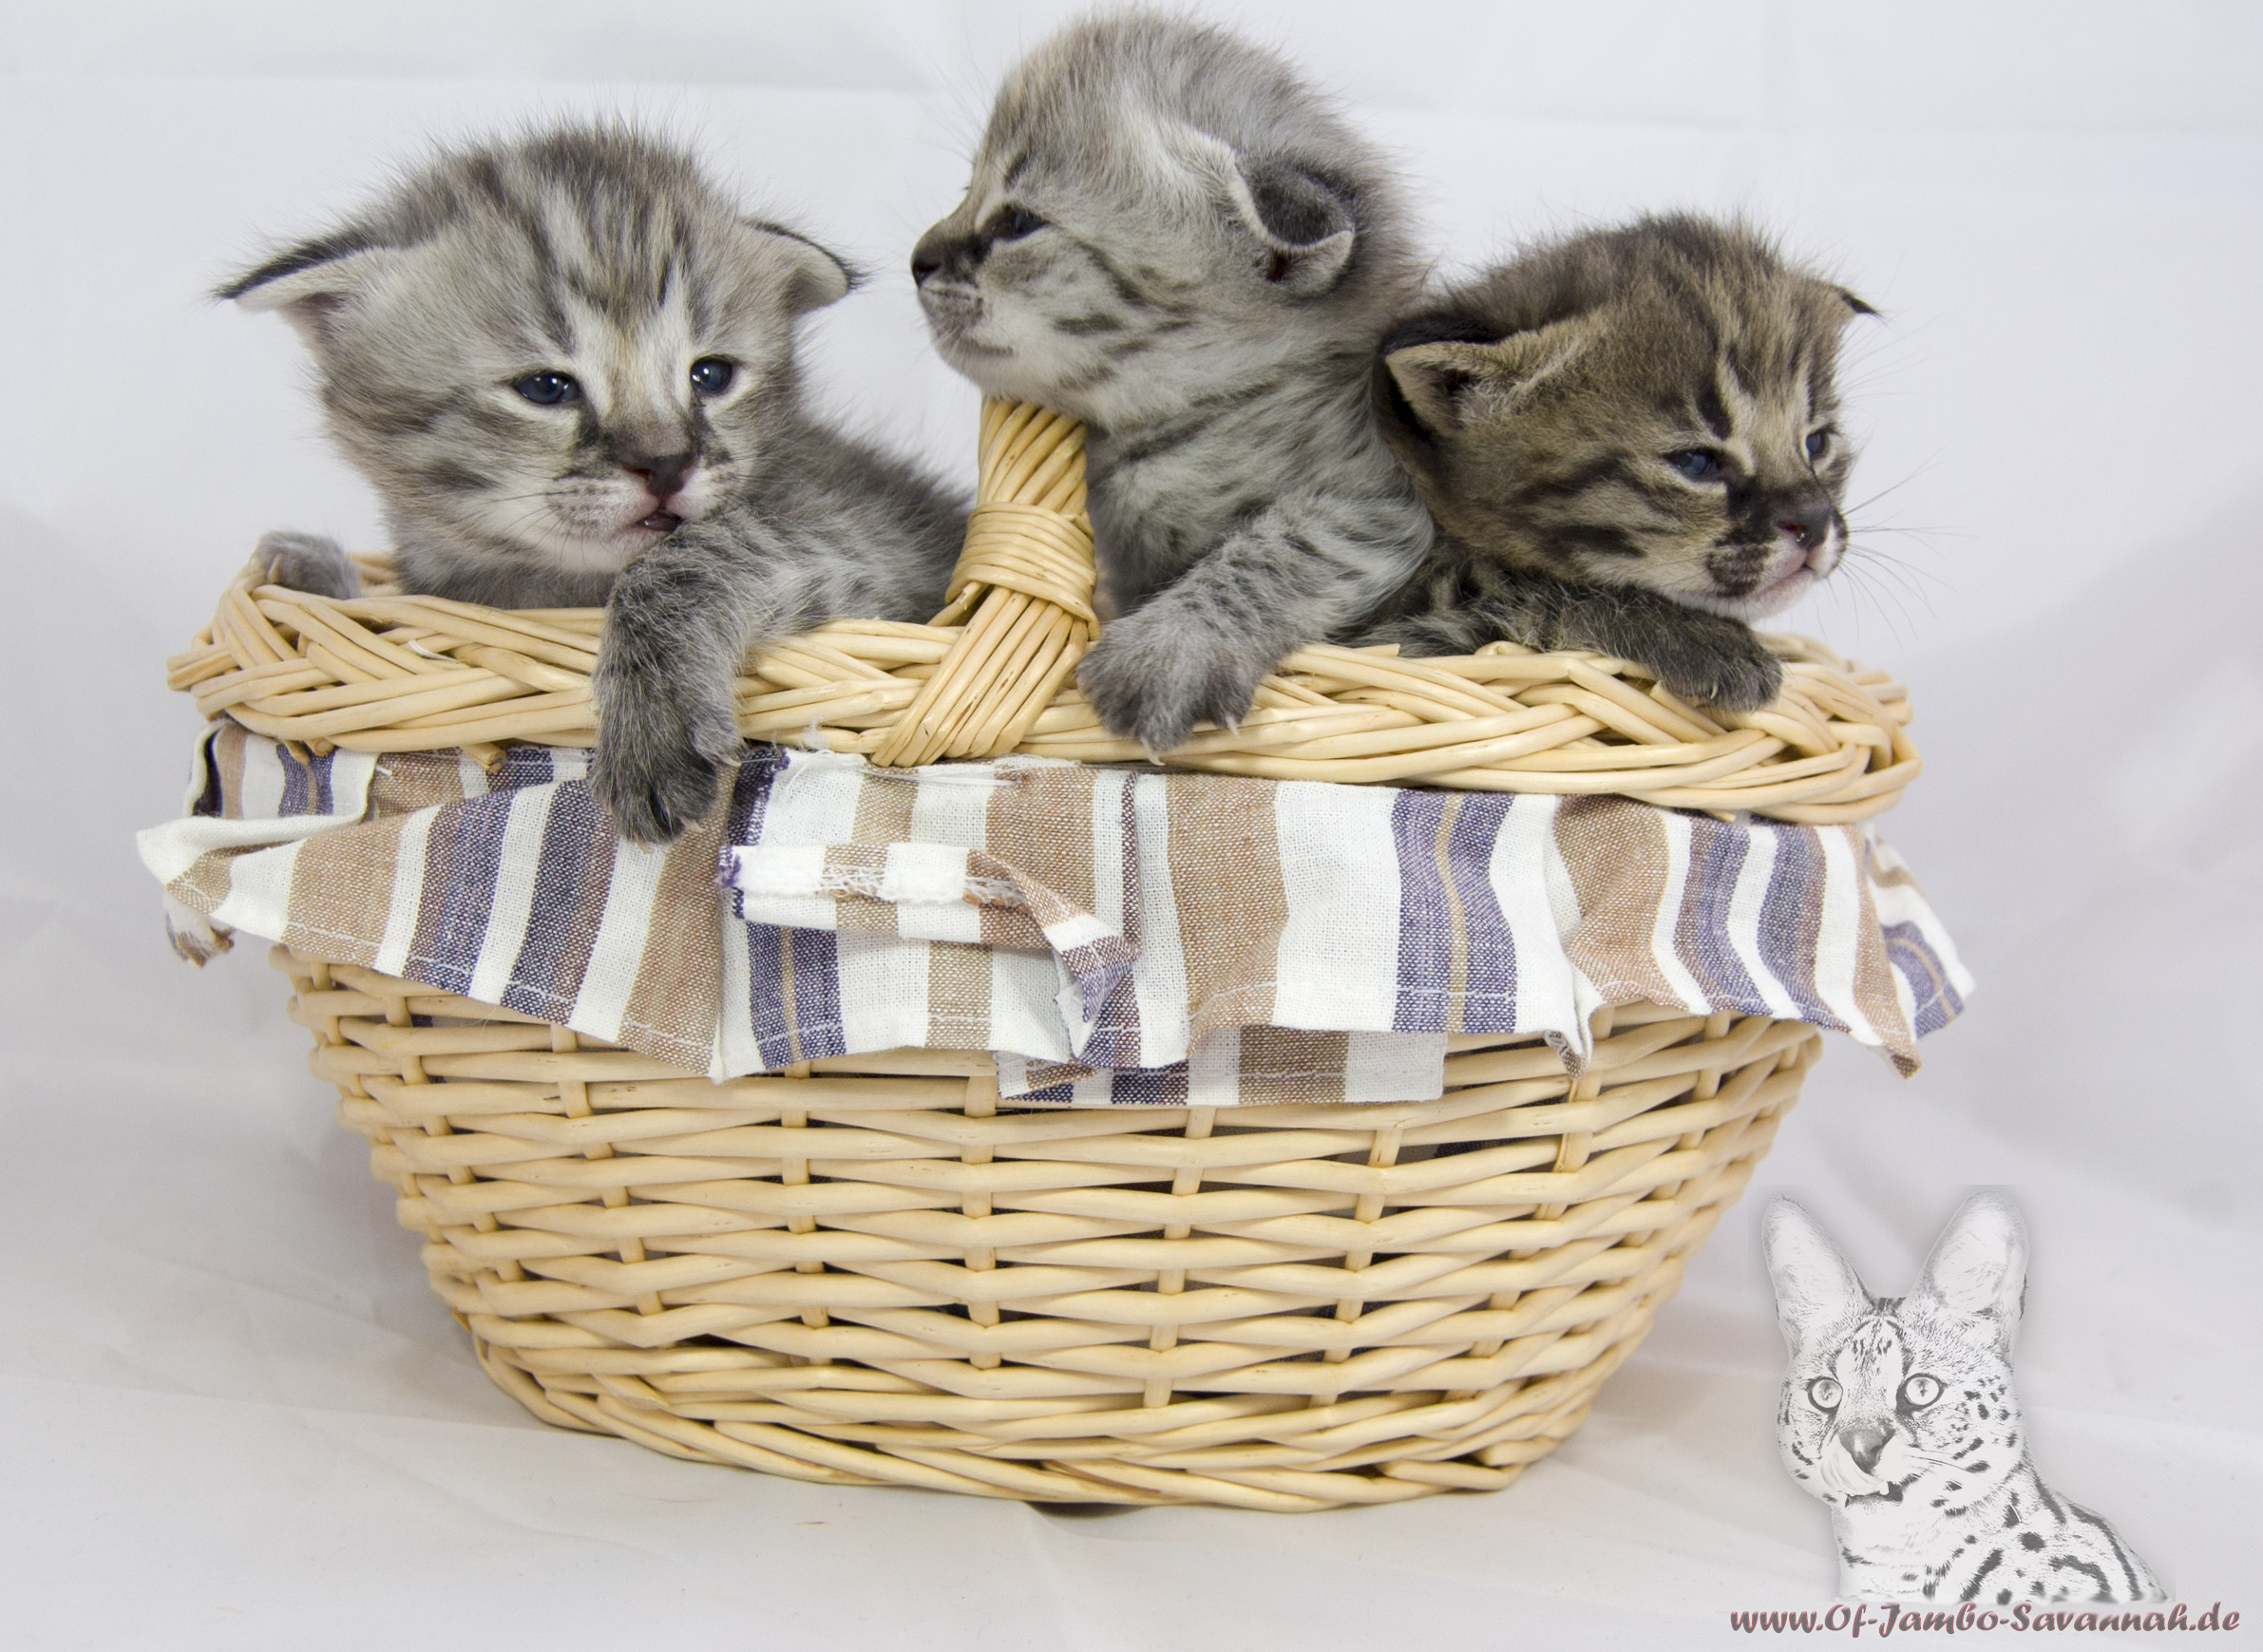 Savannah Cats of Jambo Three F1 Savannah kitten in the basket!